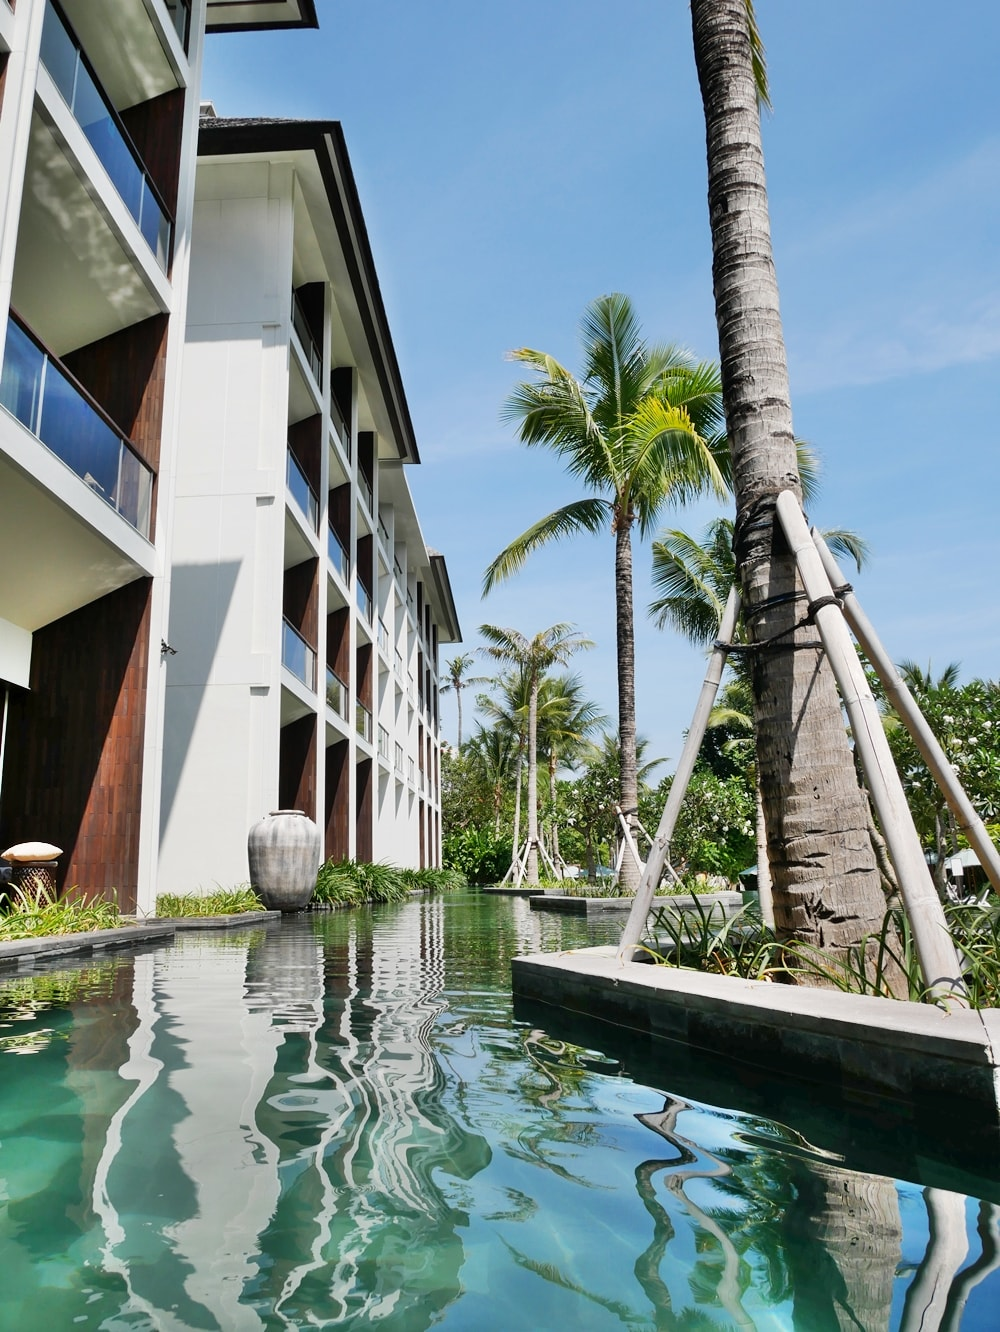 CHECK-IN AT THE ANVAYA BEACH RESORT KUTA